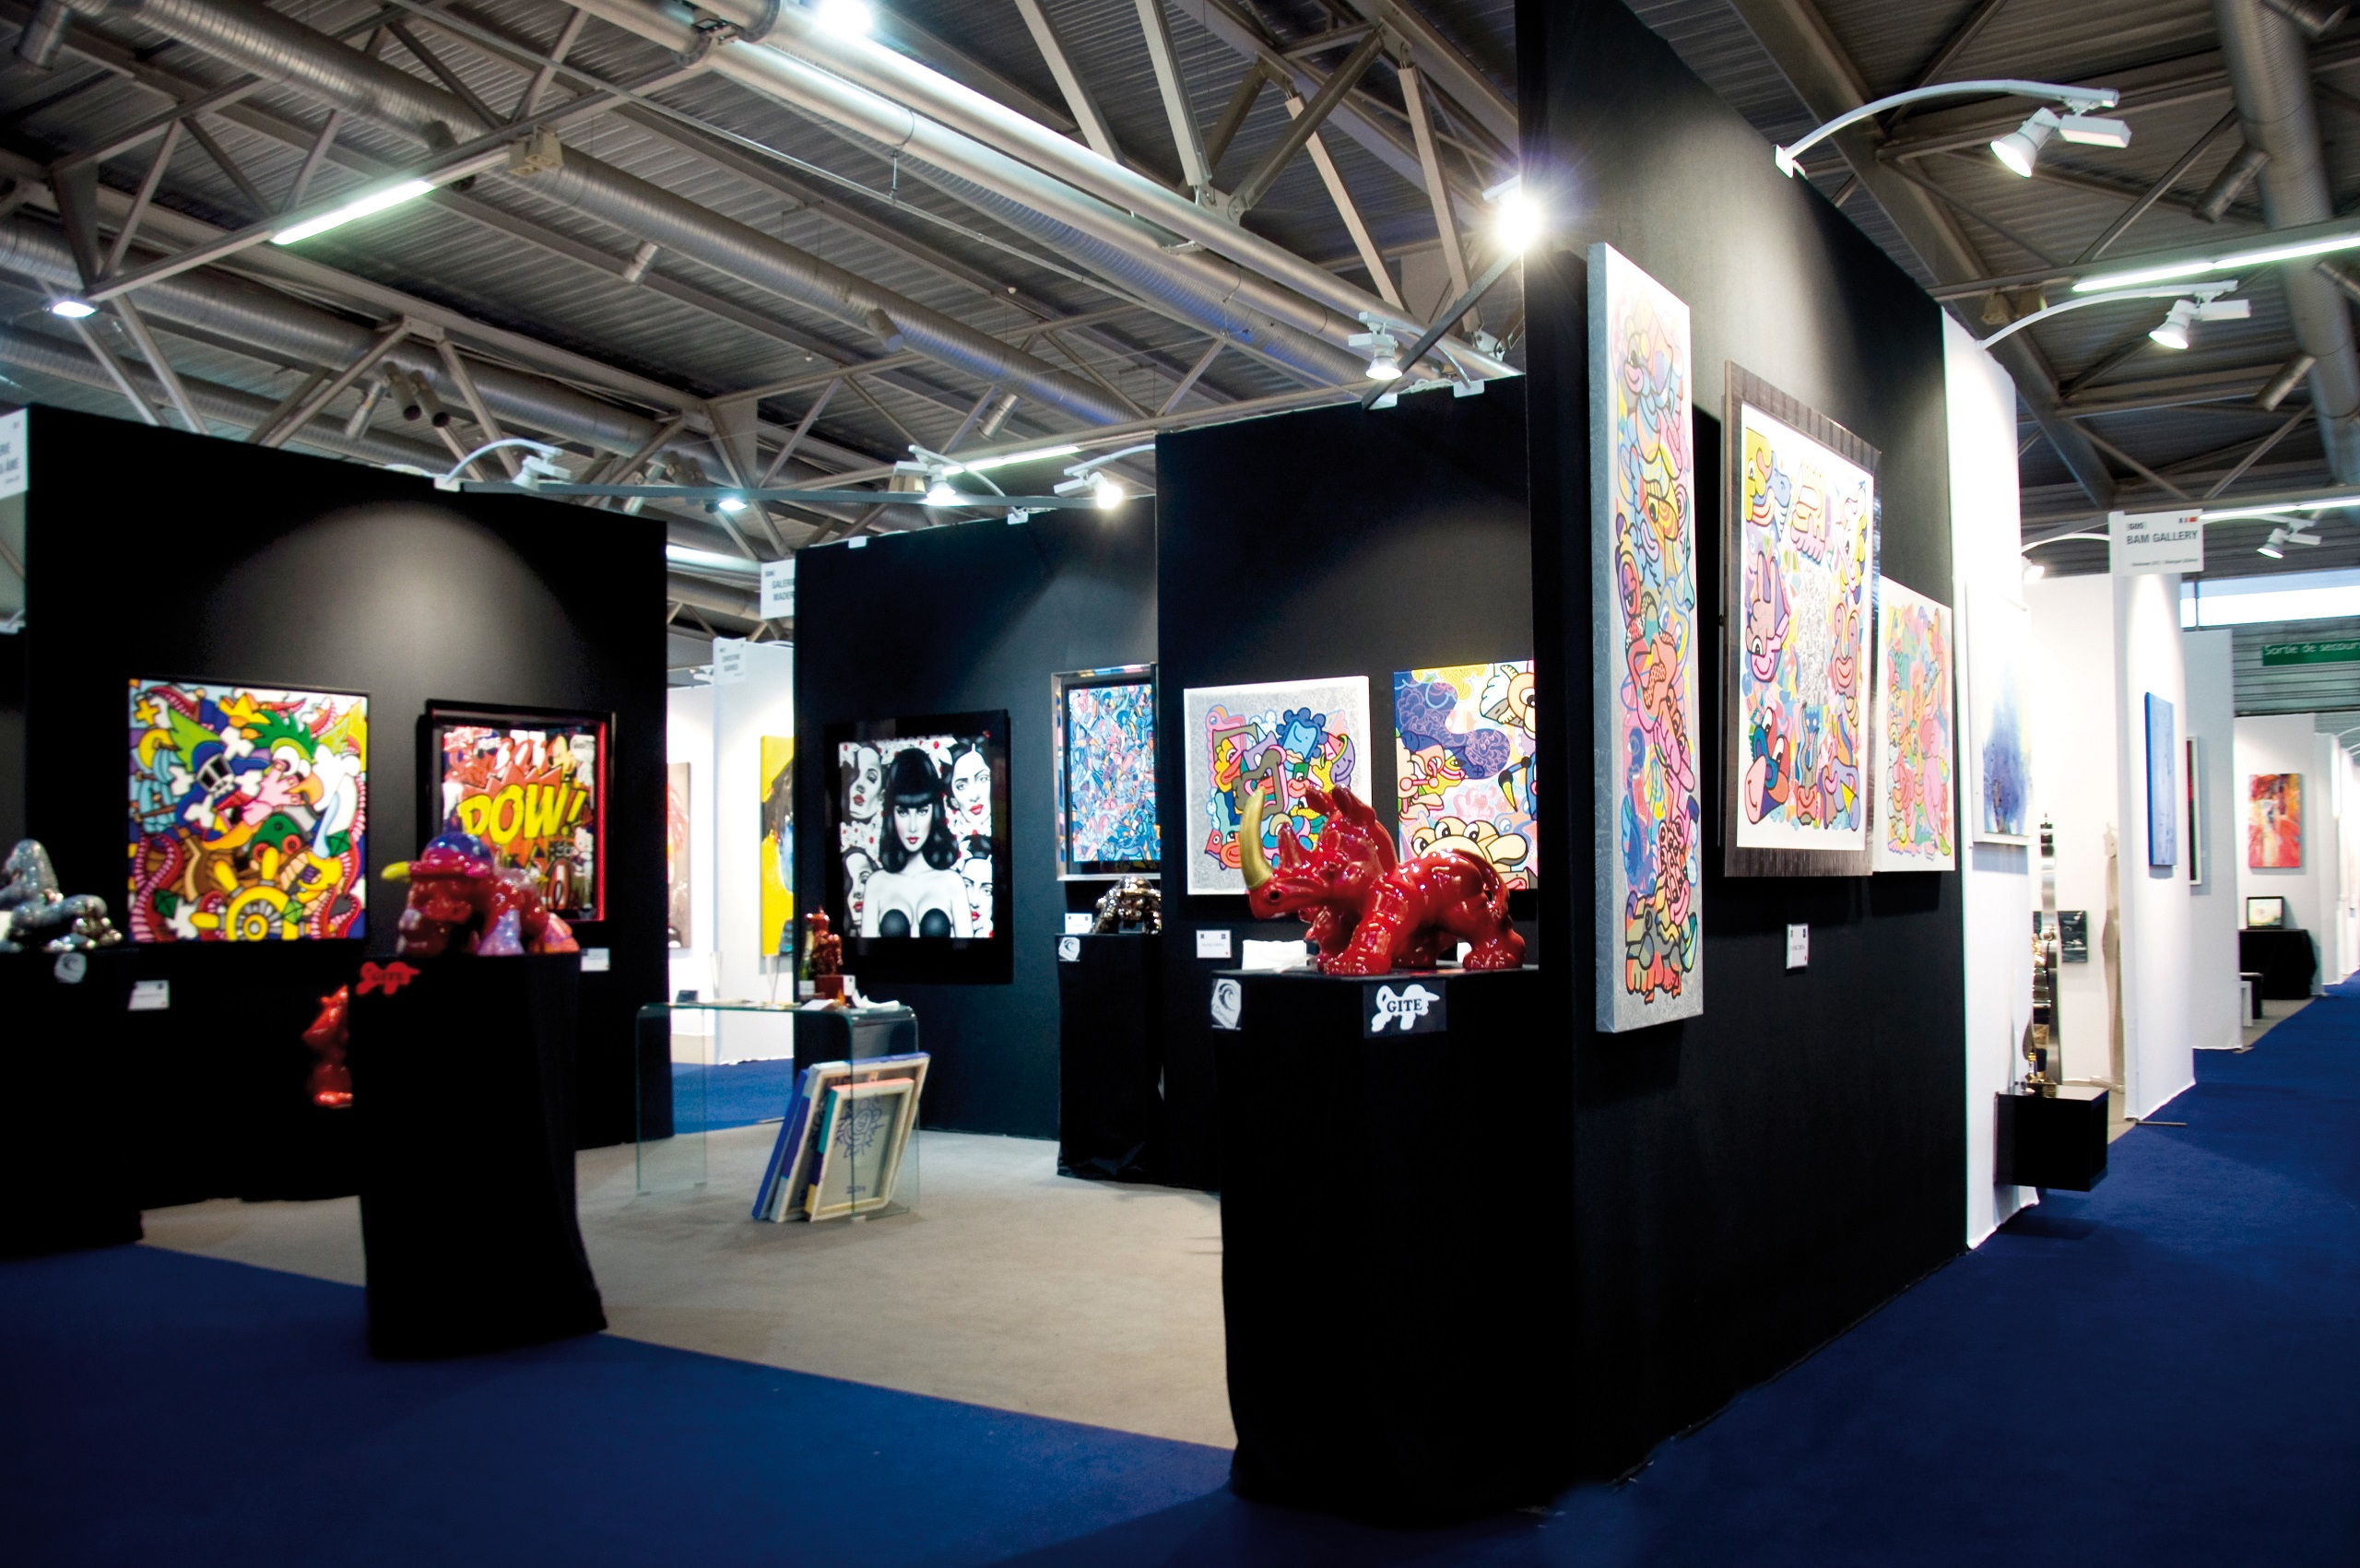 Salon international d 39 art contemporain art3f les 16 17 et for Salon international d art contemporain toulouse